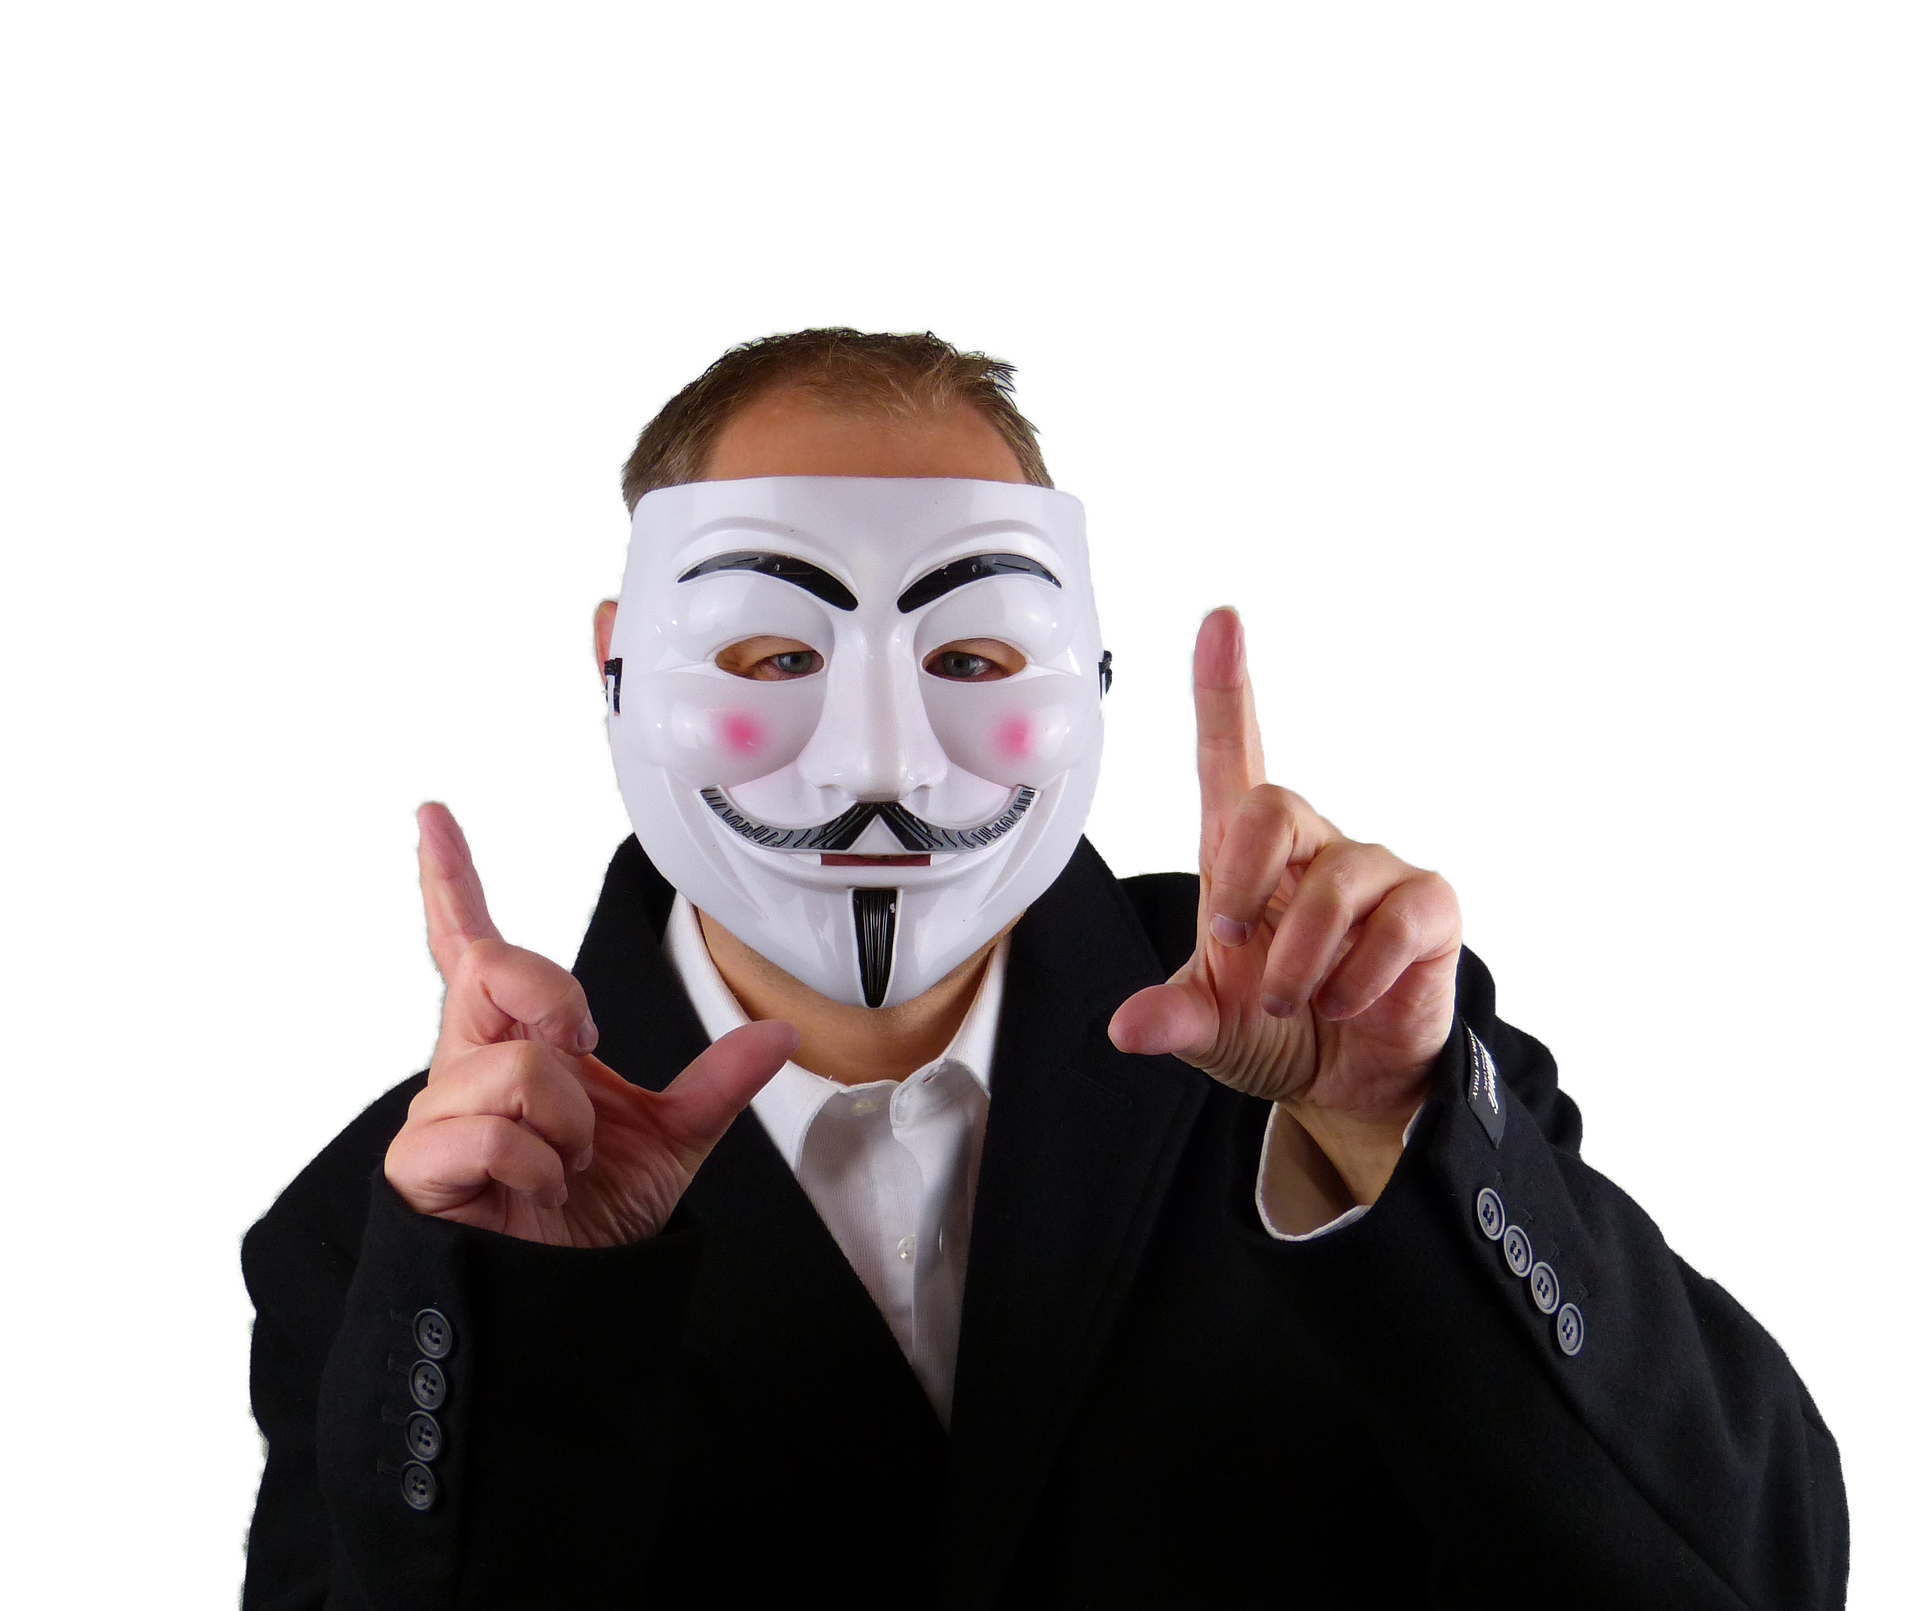 Man in a Guy Fawkes mask pointing upwards with both hands